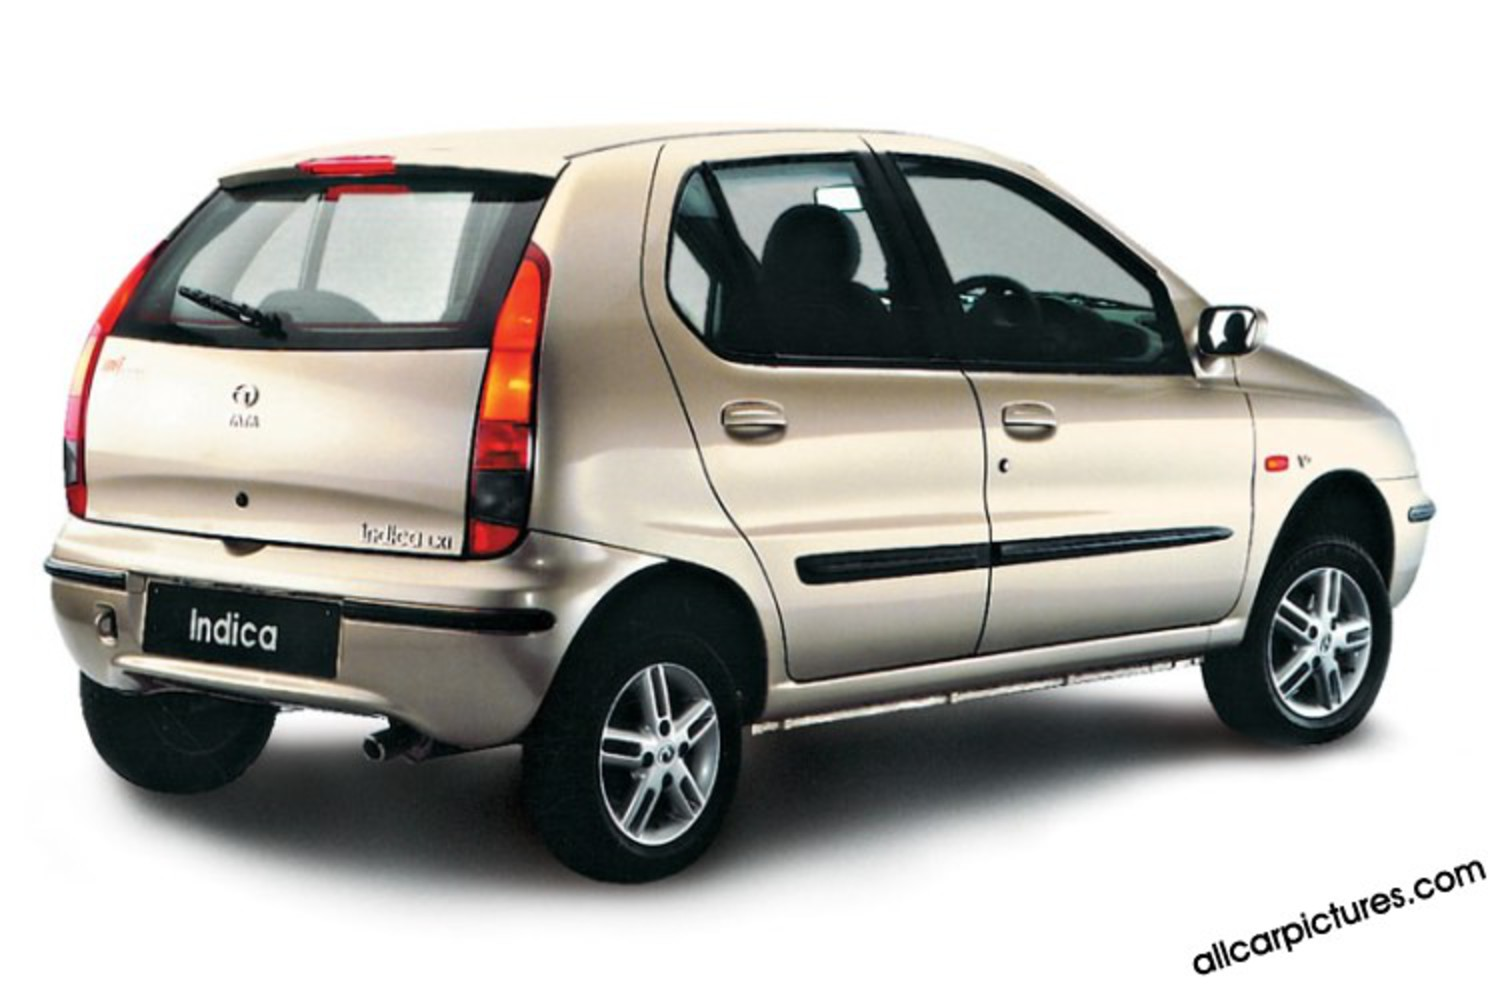 Swotti - Tata Indica, The most relevant opinions